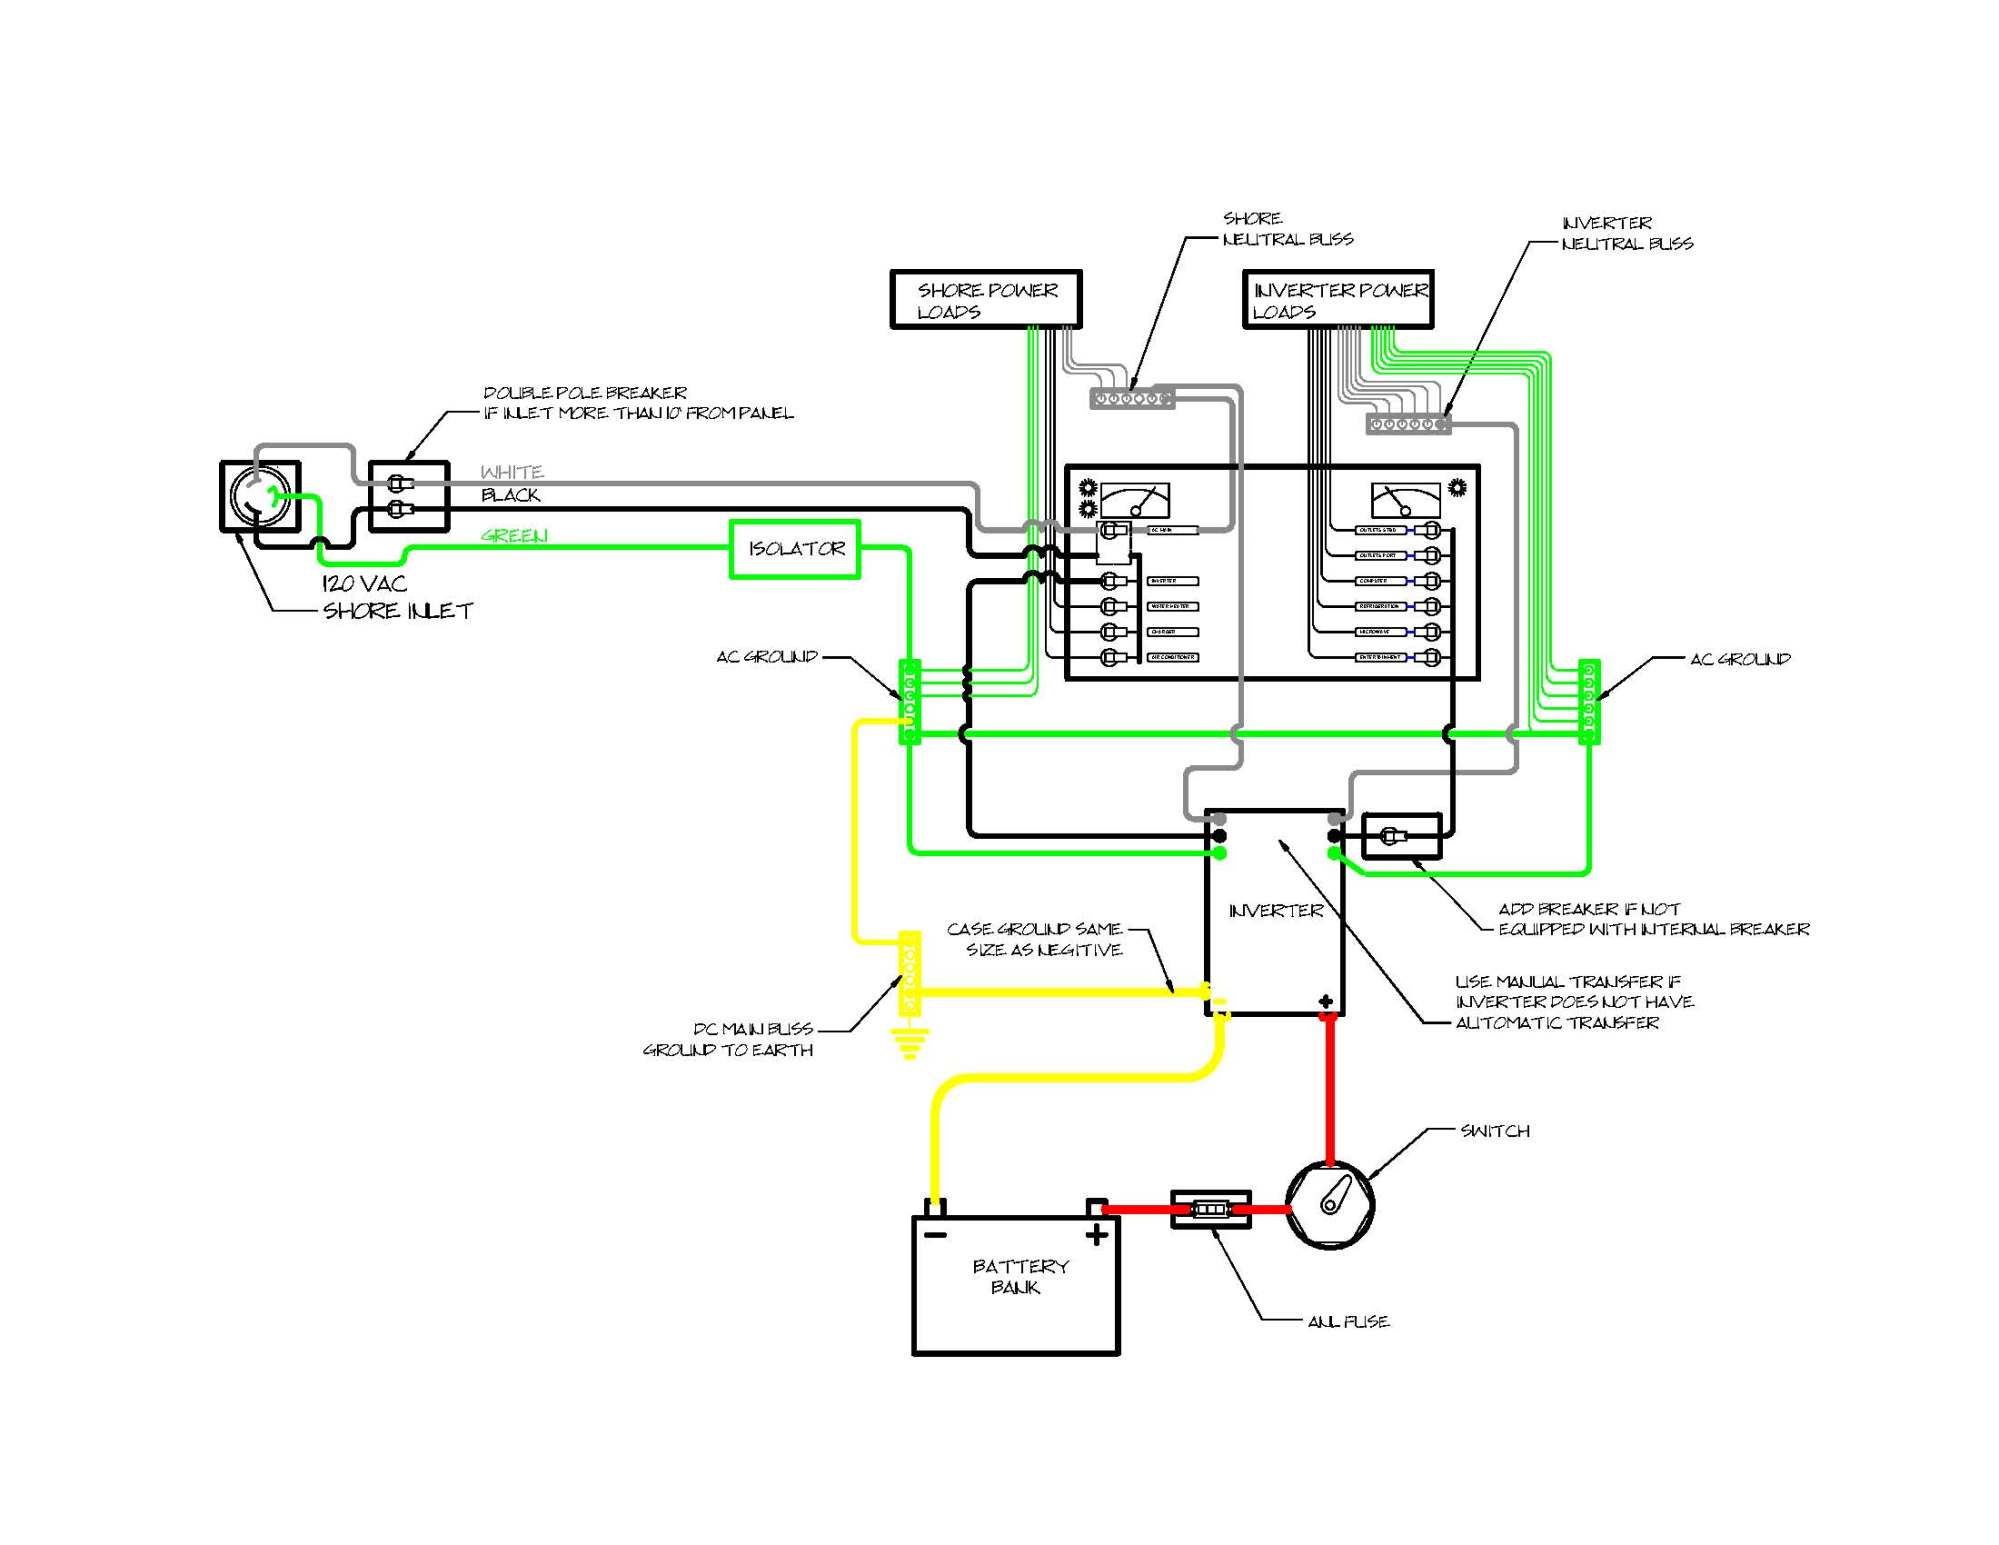 hight resolution of understanding inverter installations project boat zen boat inverter wiring diagram boat inverter wiring diagram